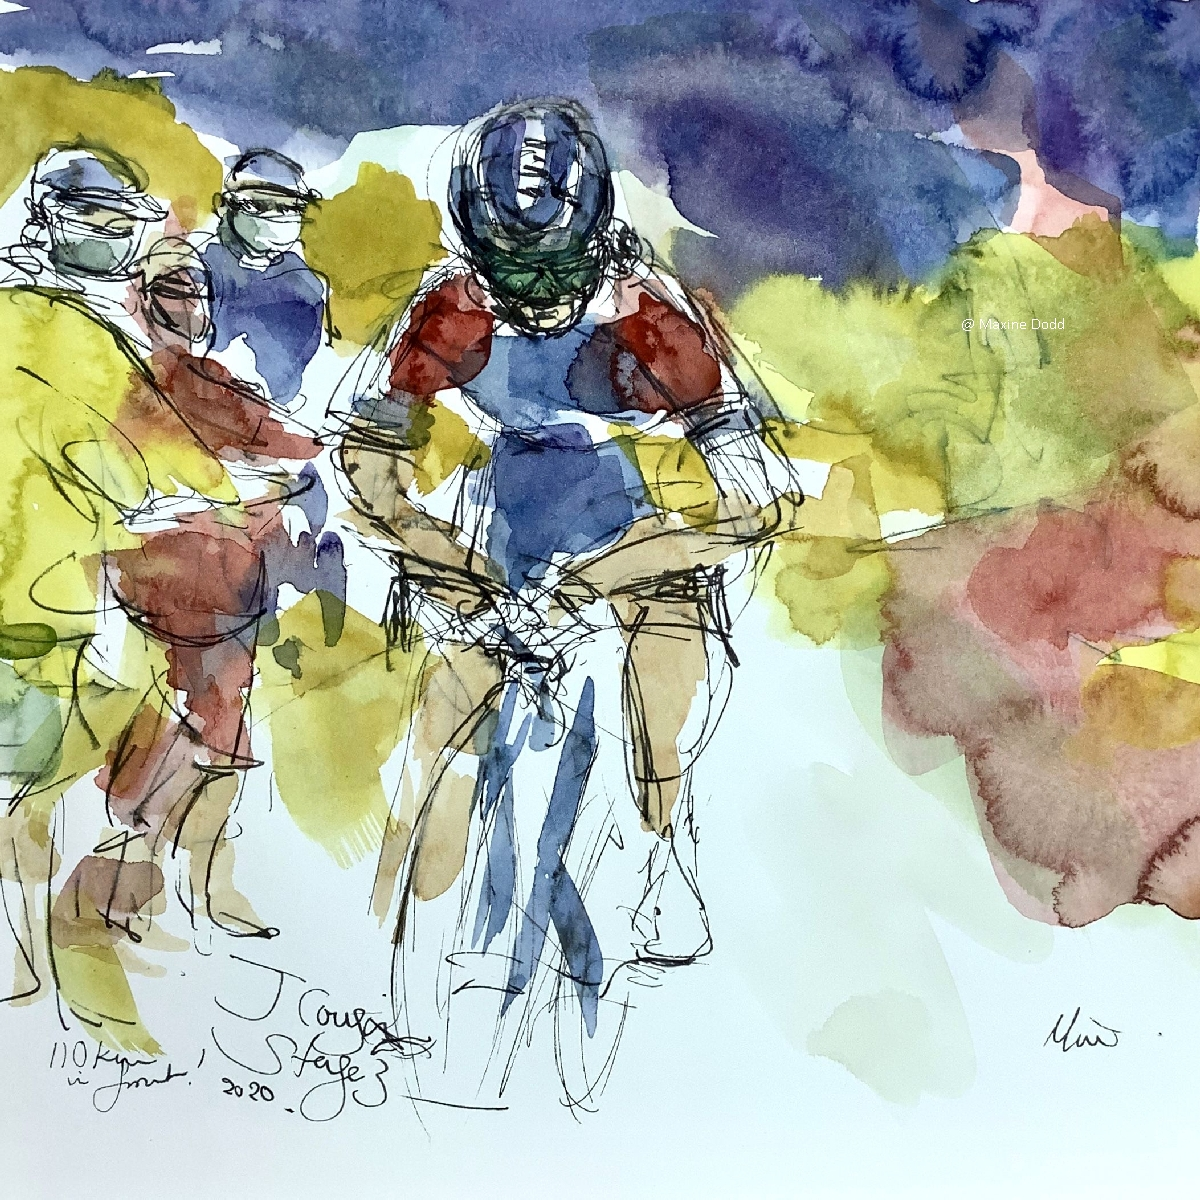 Jérôme Cousin,110Km up front watercolour, pen and ink by Maxine Dodd